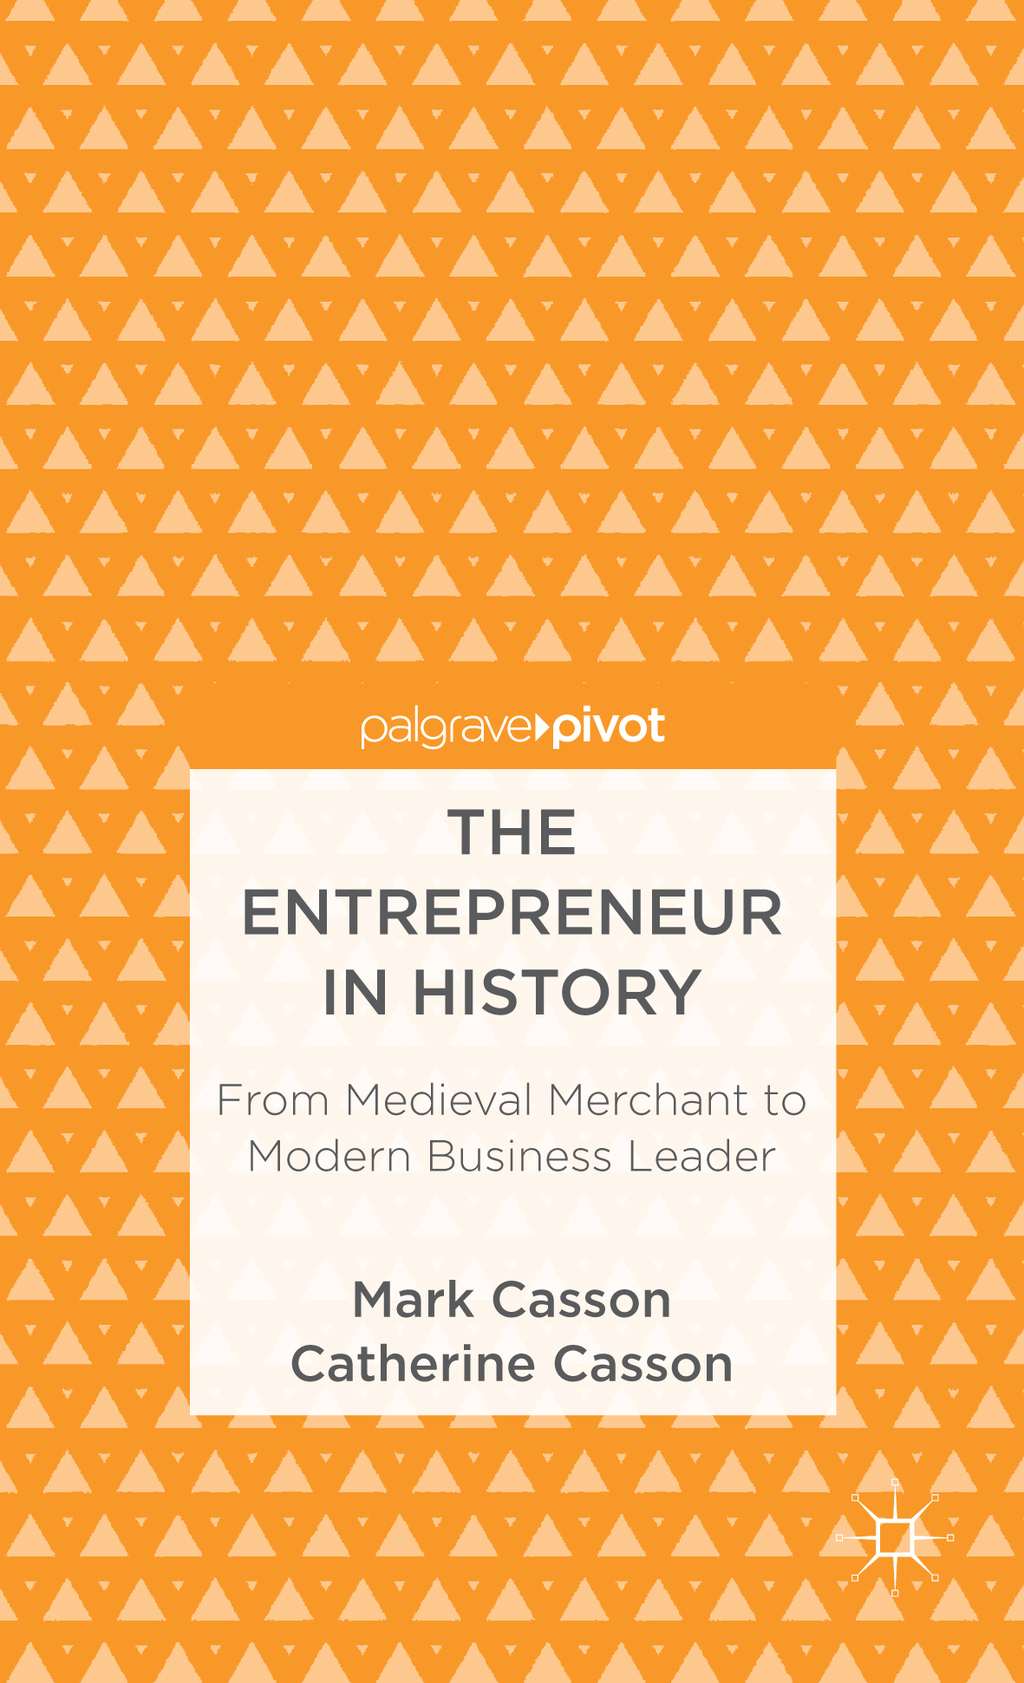 The Entrepreneur in History